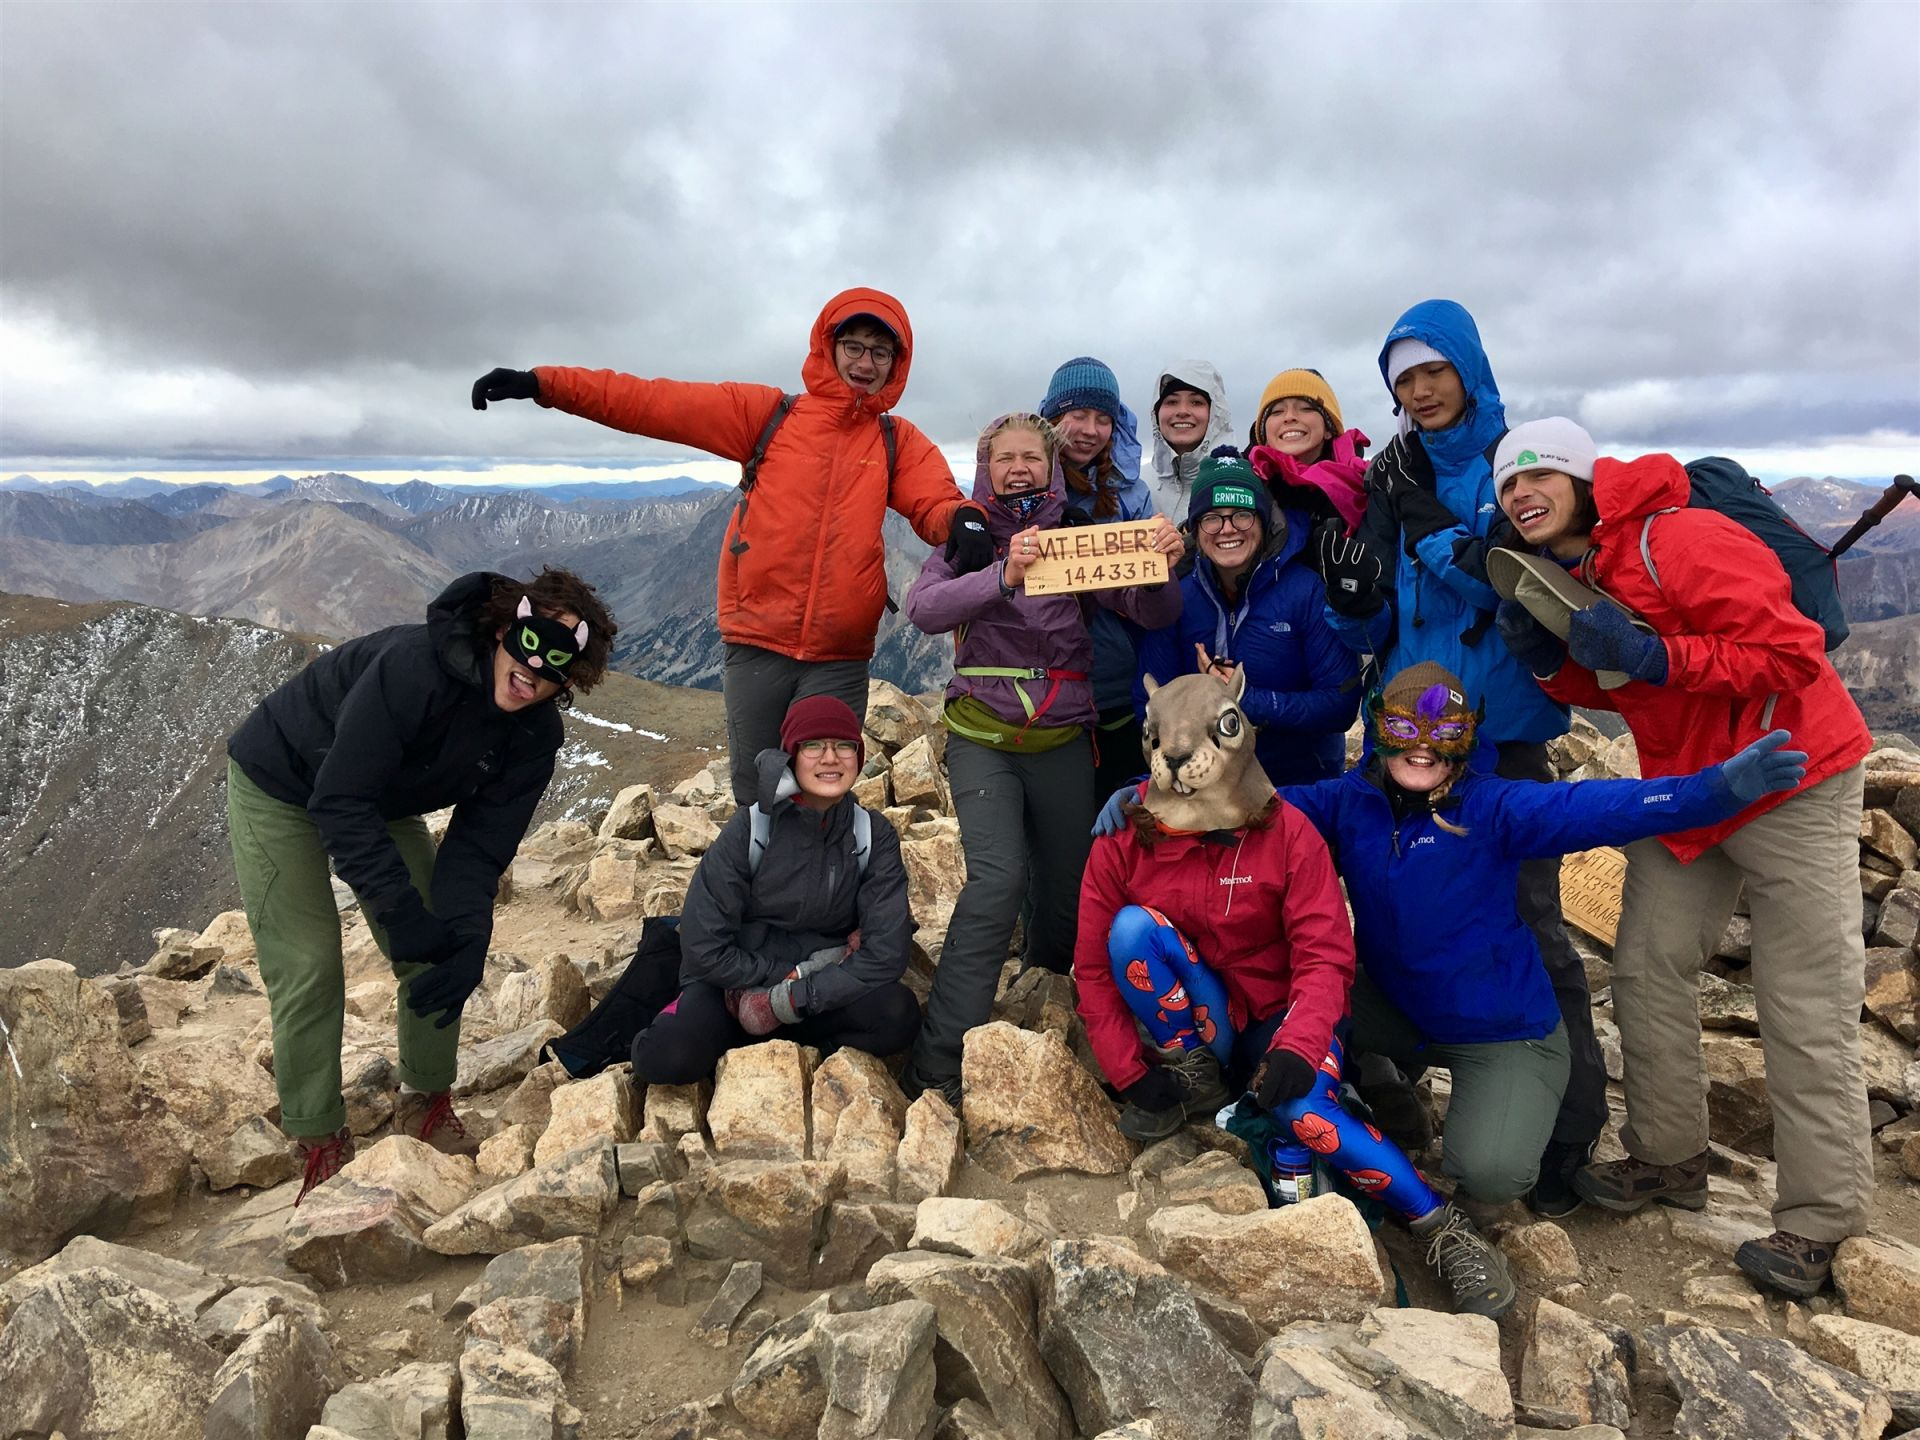 She accomplished a unique feat – led her first mountain climbing expedition for Colorado College to Mt. Elbert, the highest summit of the Rocky Mountains at an elevation of 14,433 feet.